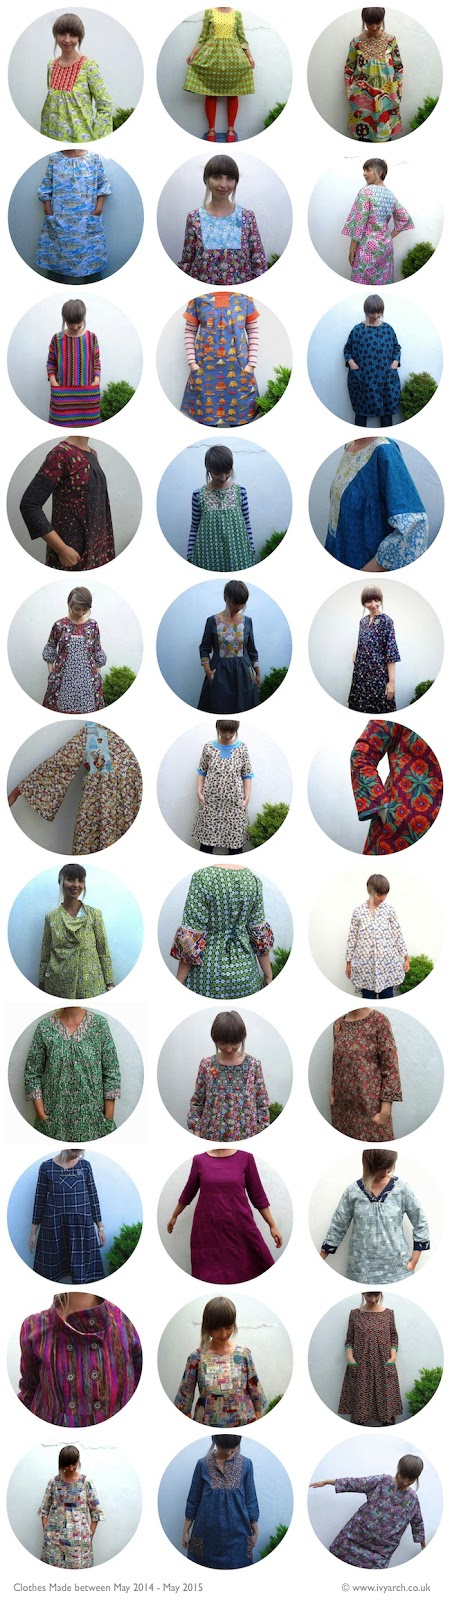 Clothes made by Ivy Arch between May 2014 and May 2015